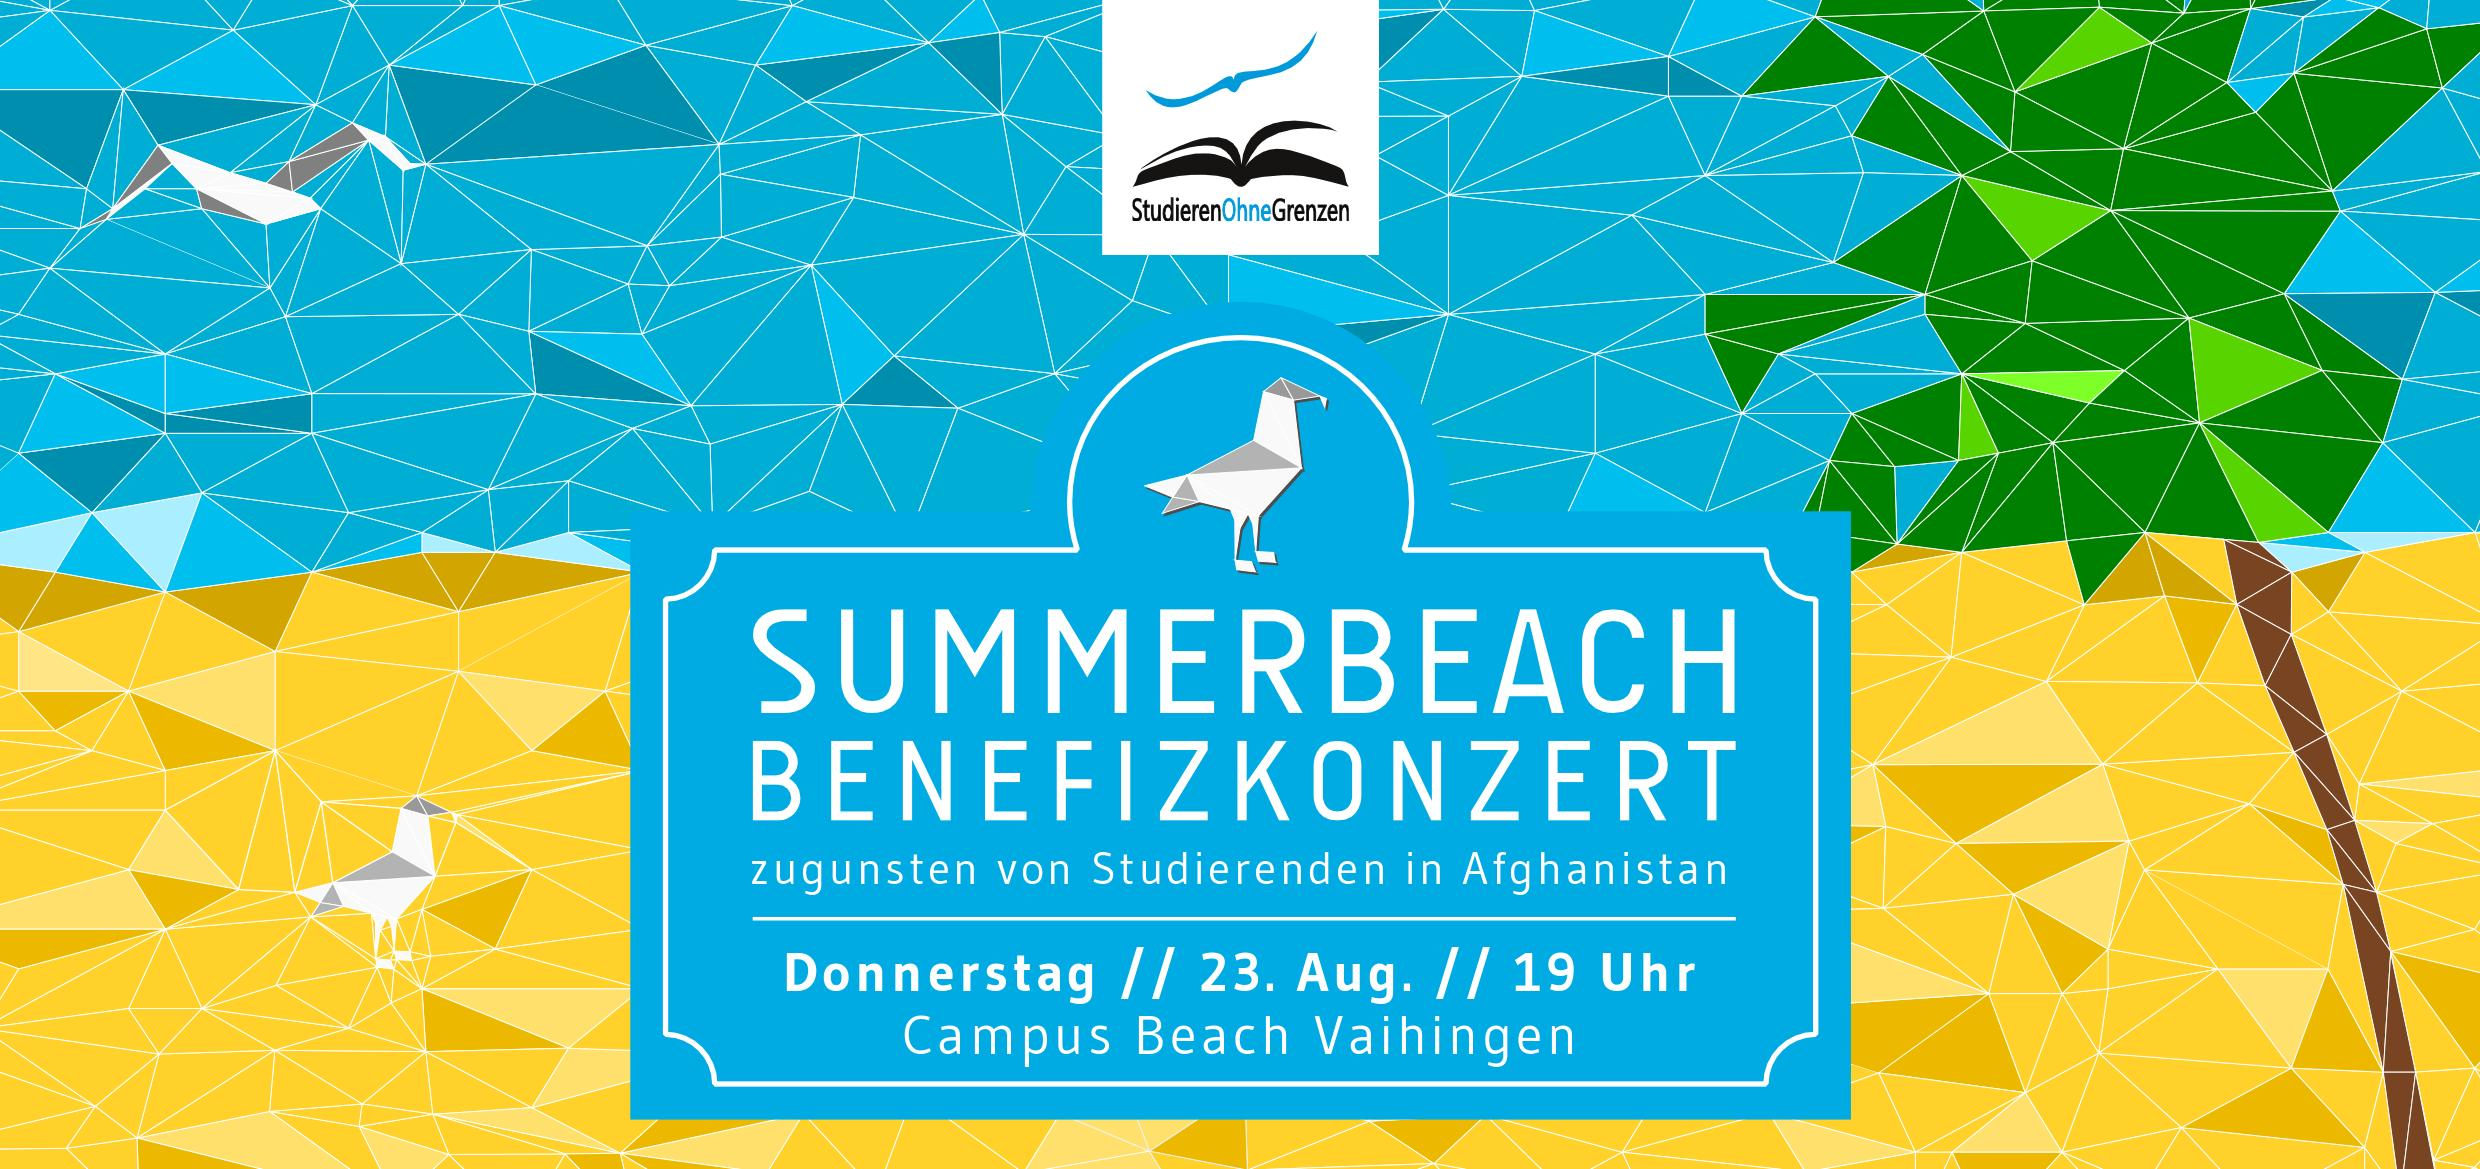 Summerbeach 23. Aug 19 Uhr